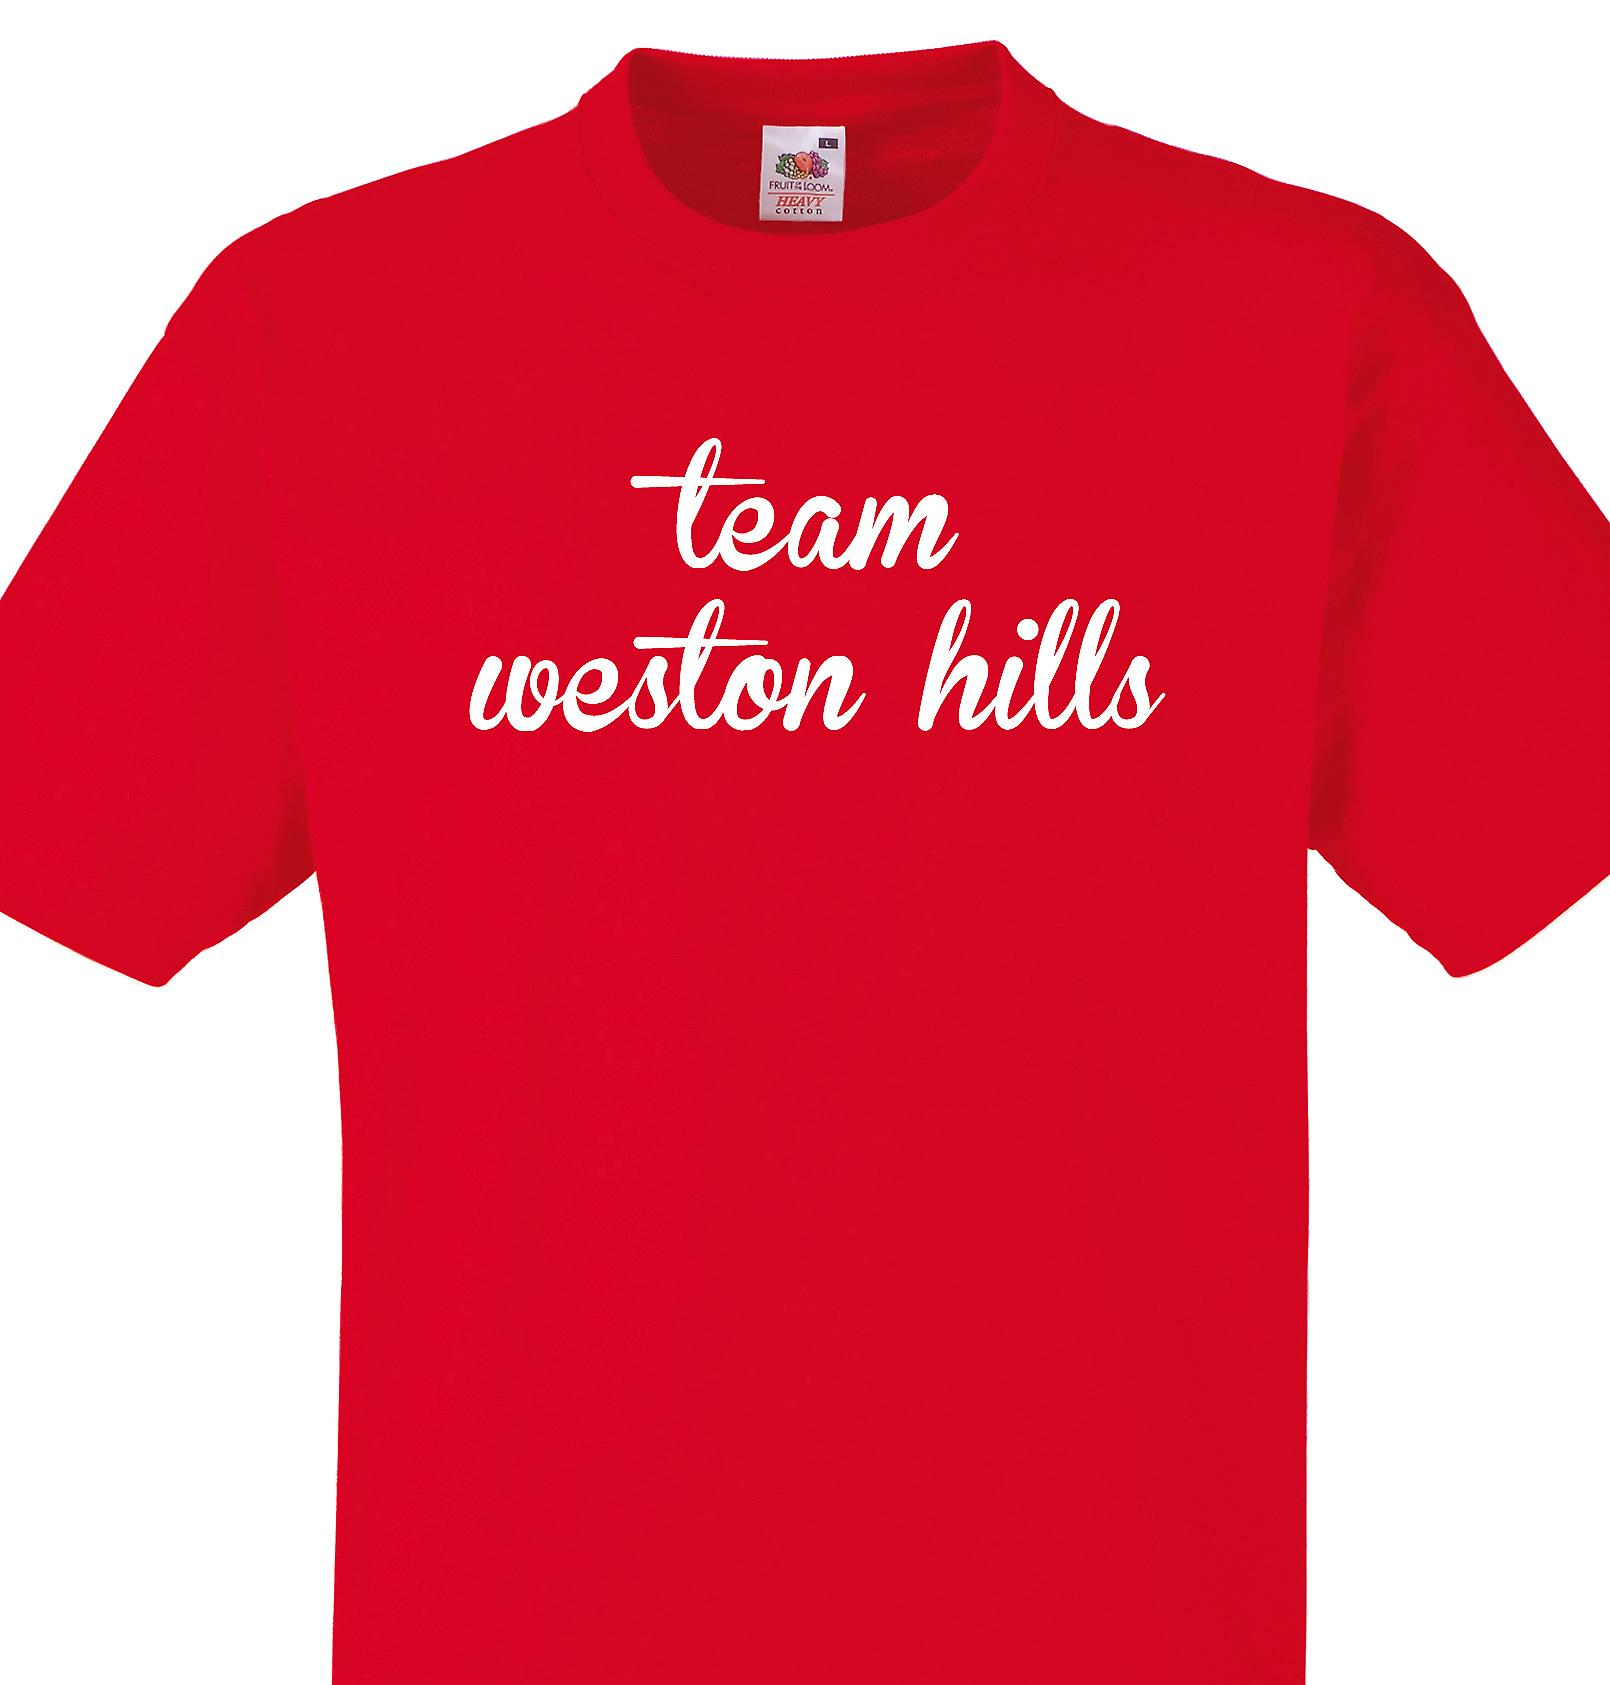 Team Weston hills Red T shirt